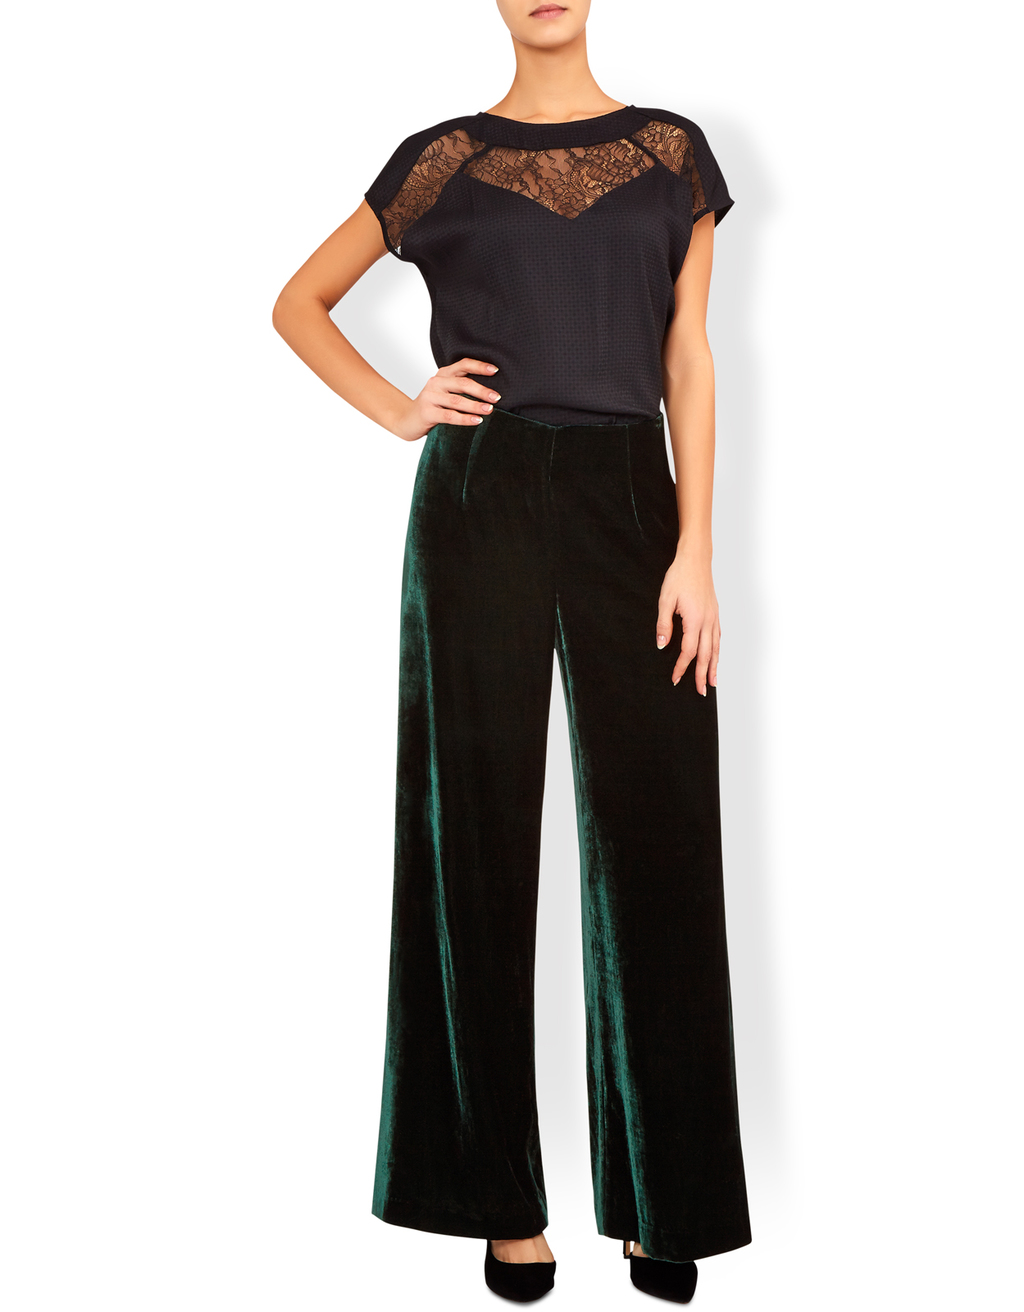 Vivienne Velvet Wideleg Trouser - length: standard; pattern: plain; style: palazzo; waist: high rise; predominant colour: dark green; occasions: evening, occasion; fit: wide leg; pattern type: fabric; texture group: velvet/fabrics with pile; fibres: viscose/rayon - mix; season: a/w 2016; wardrobe: event; trends: velvet